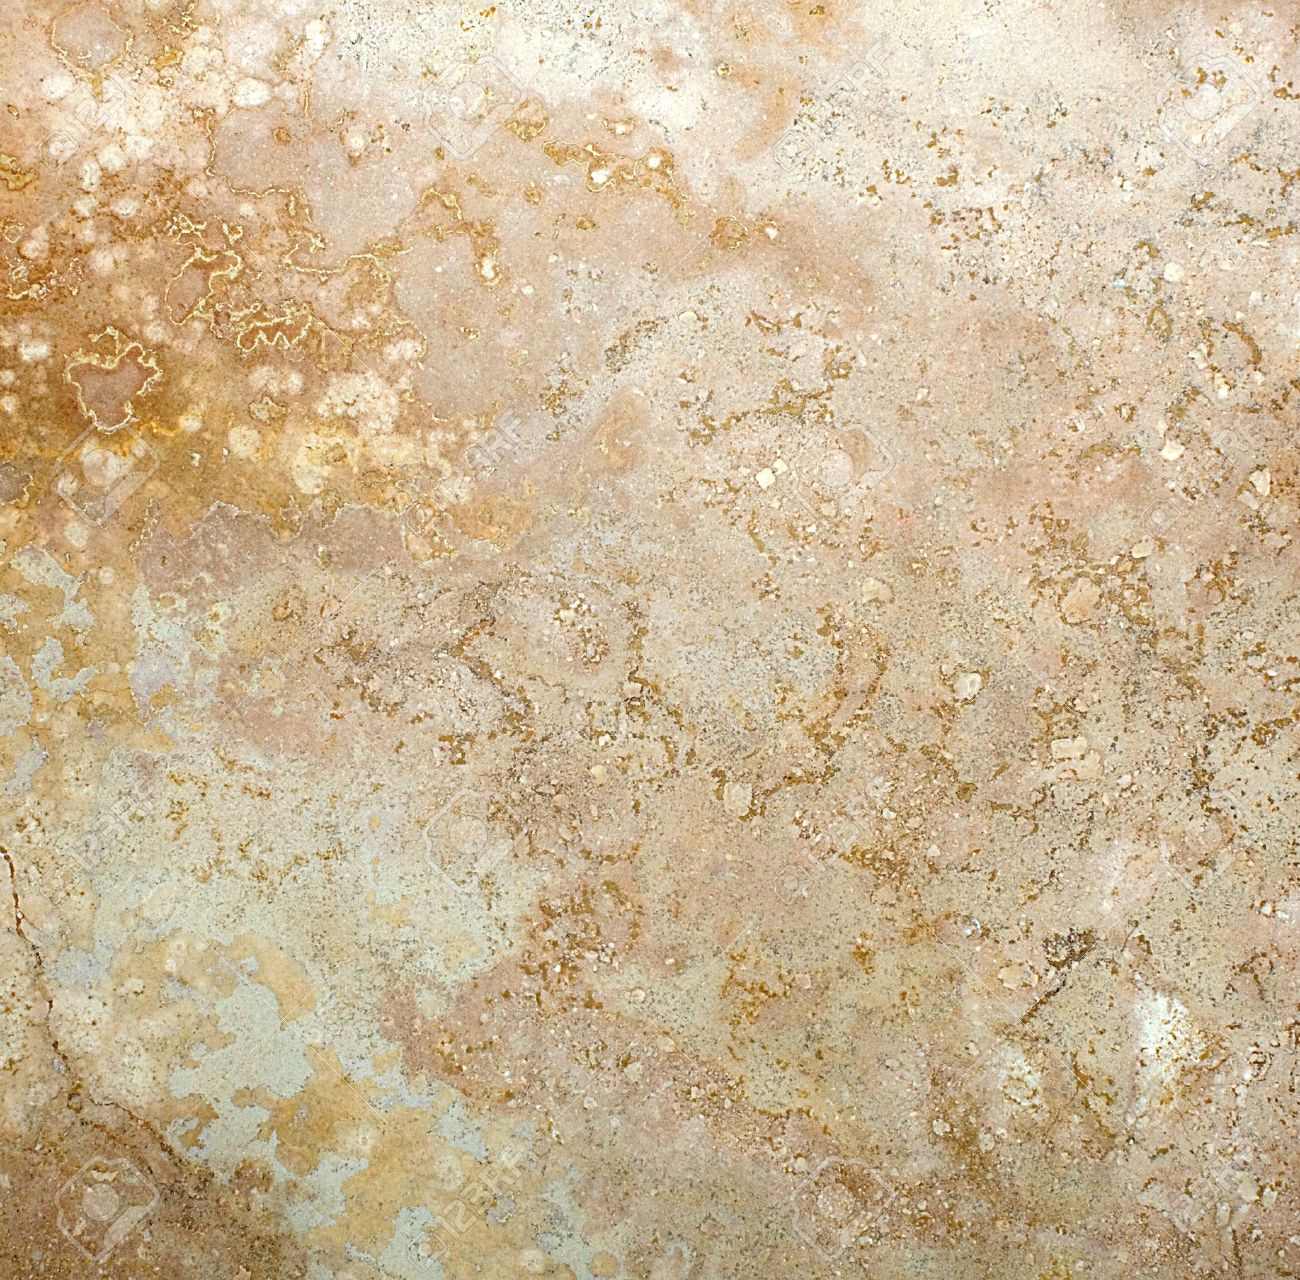 Marble And Travertine Texture Background Natural Stone Stock Photo